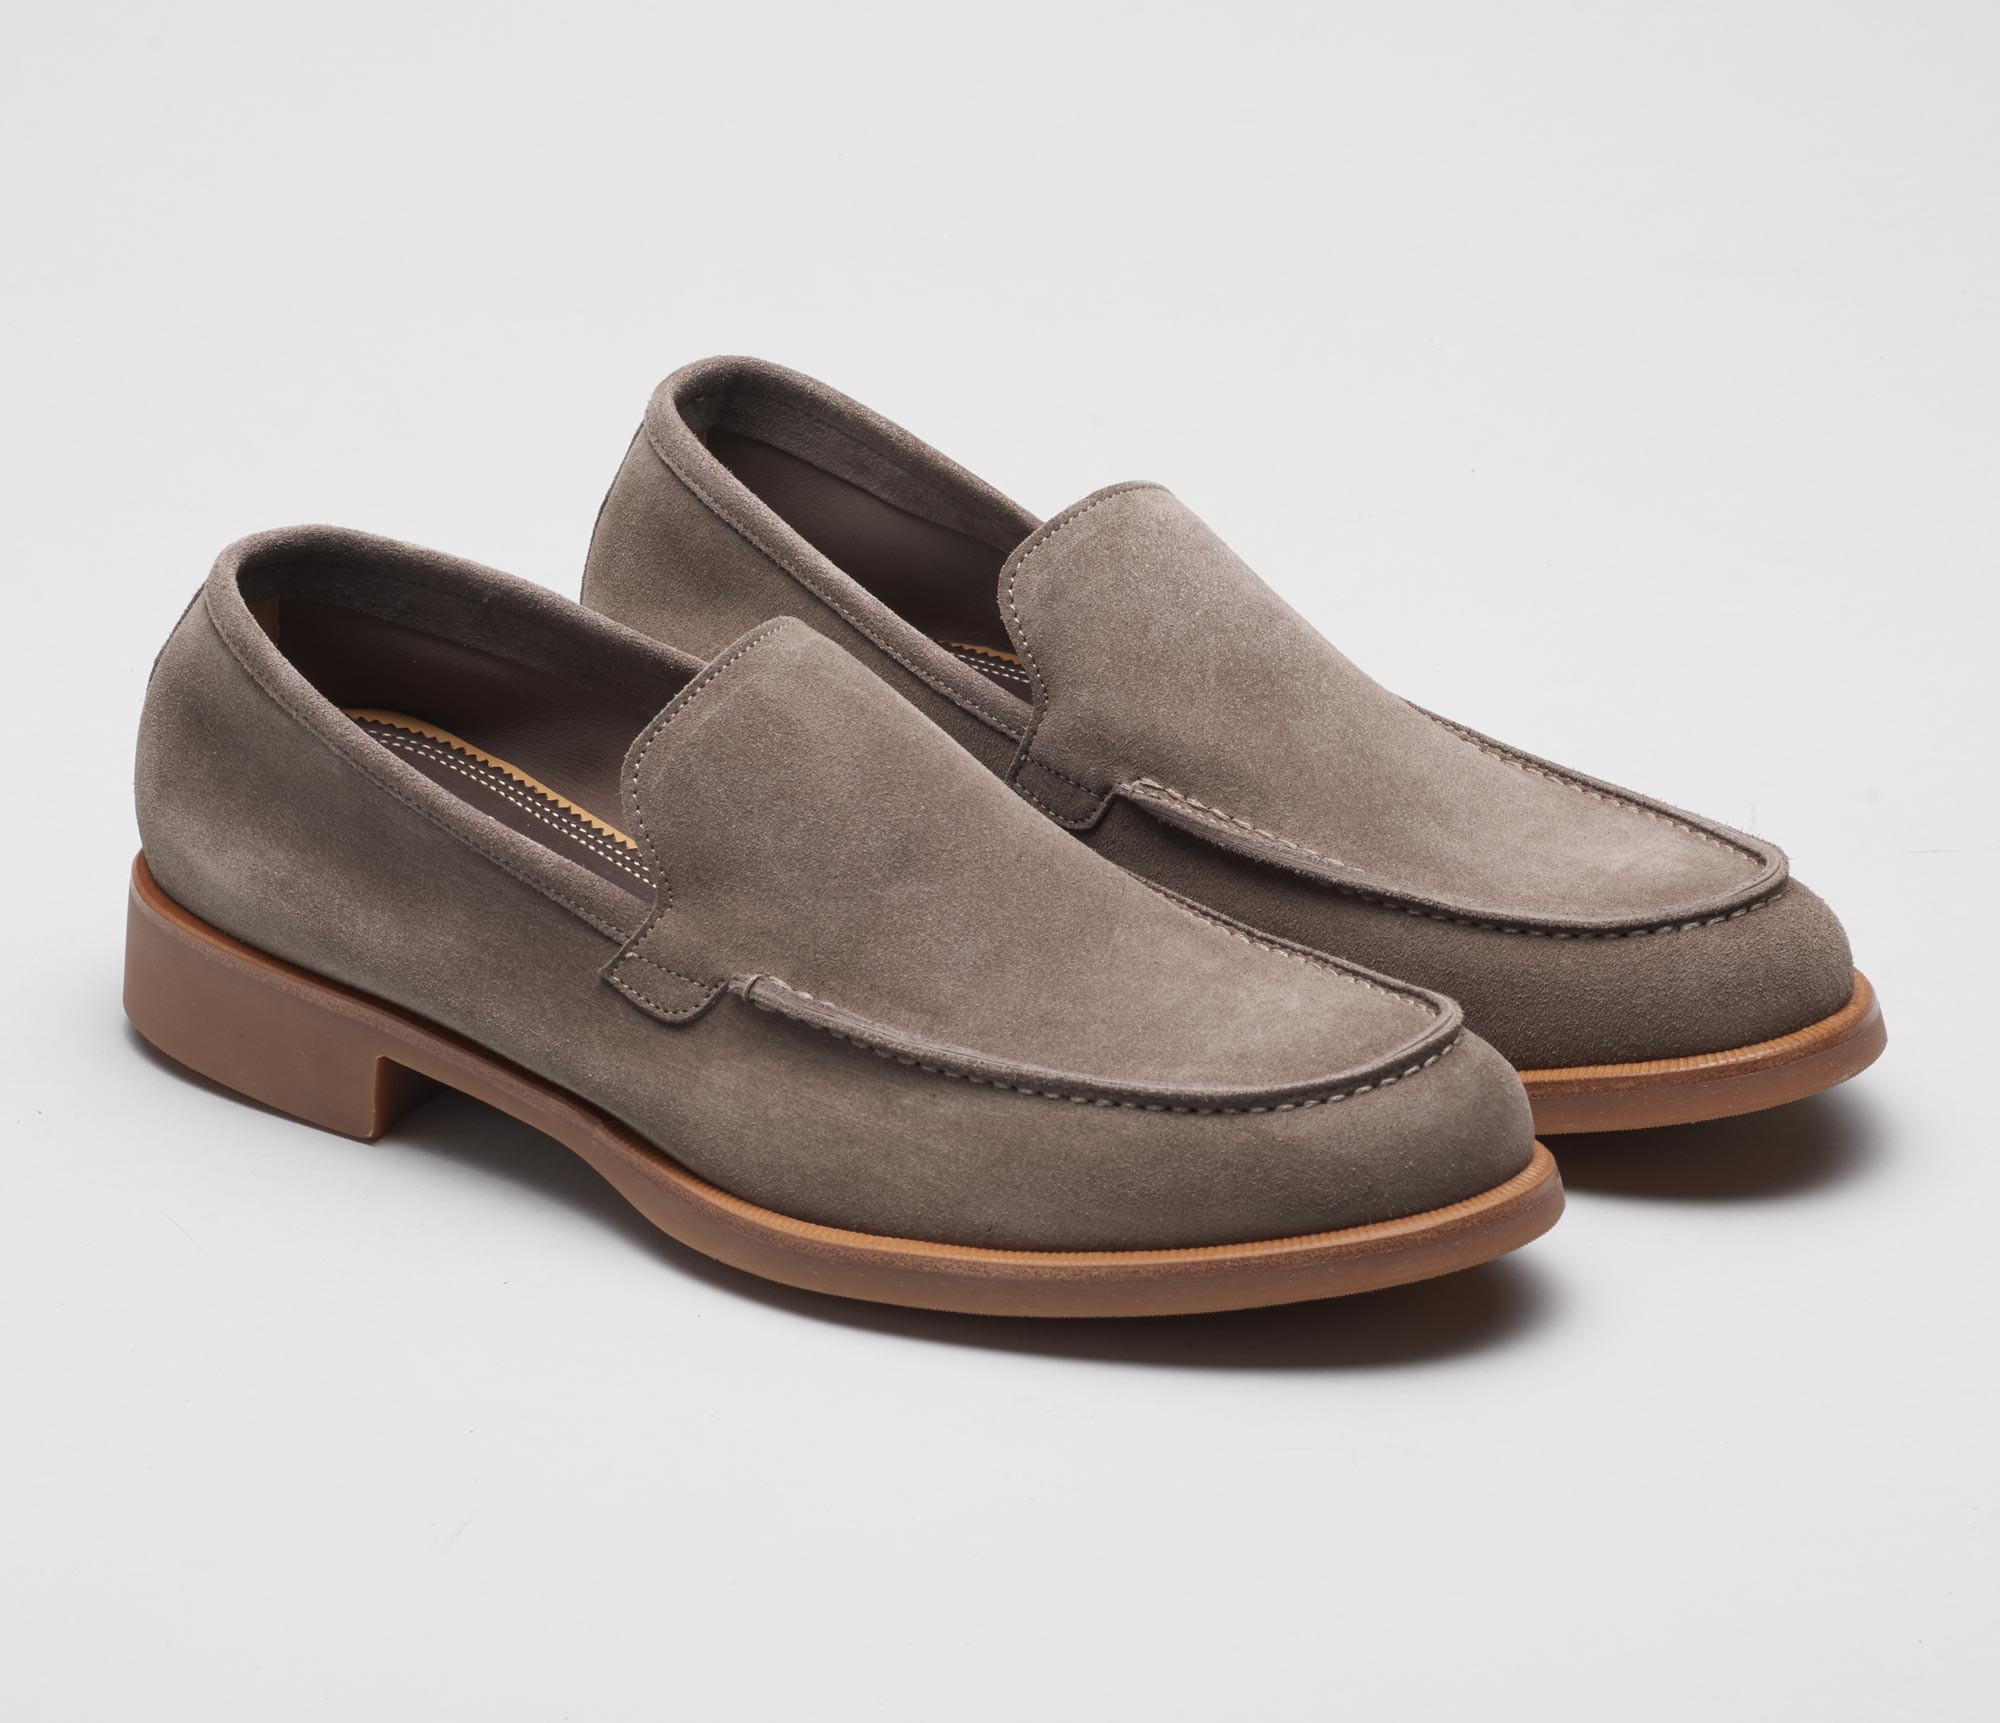 Savona Suede Loafer in Pomice